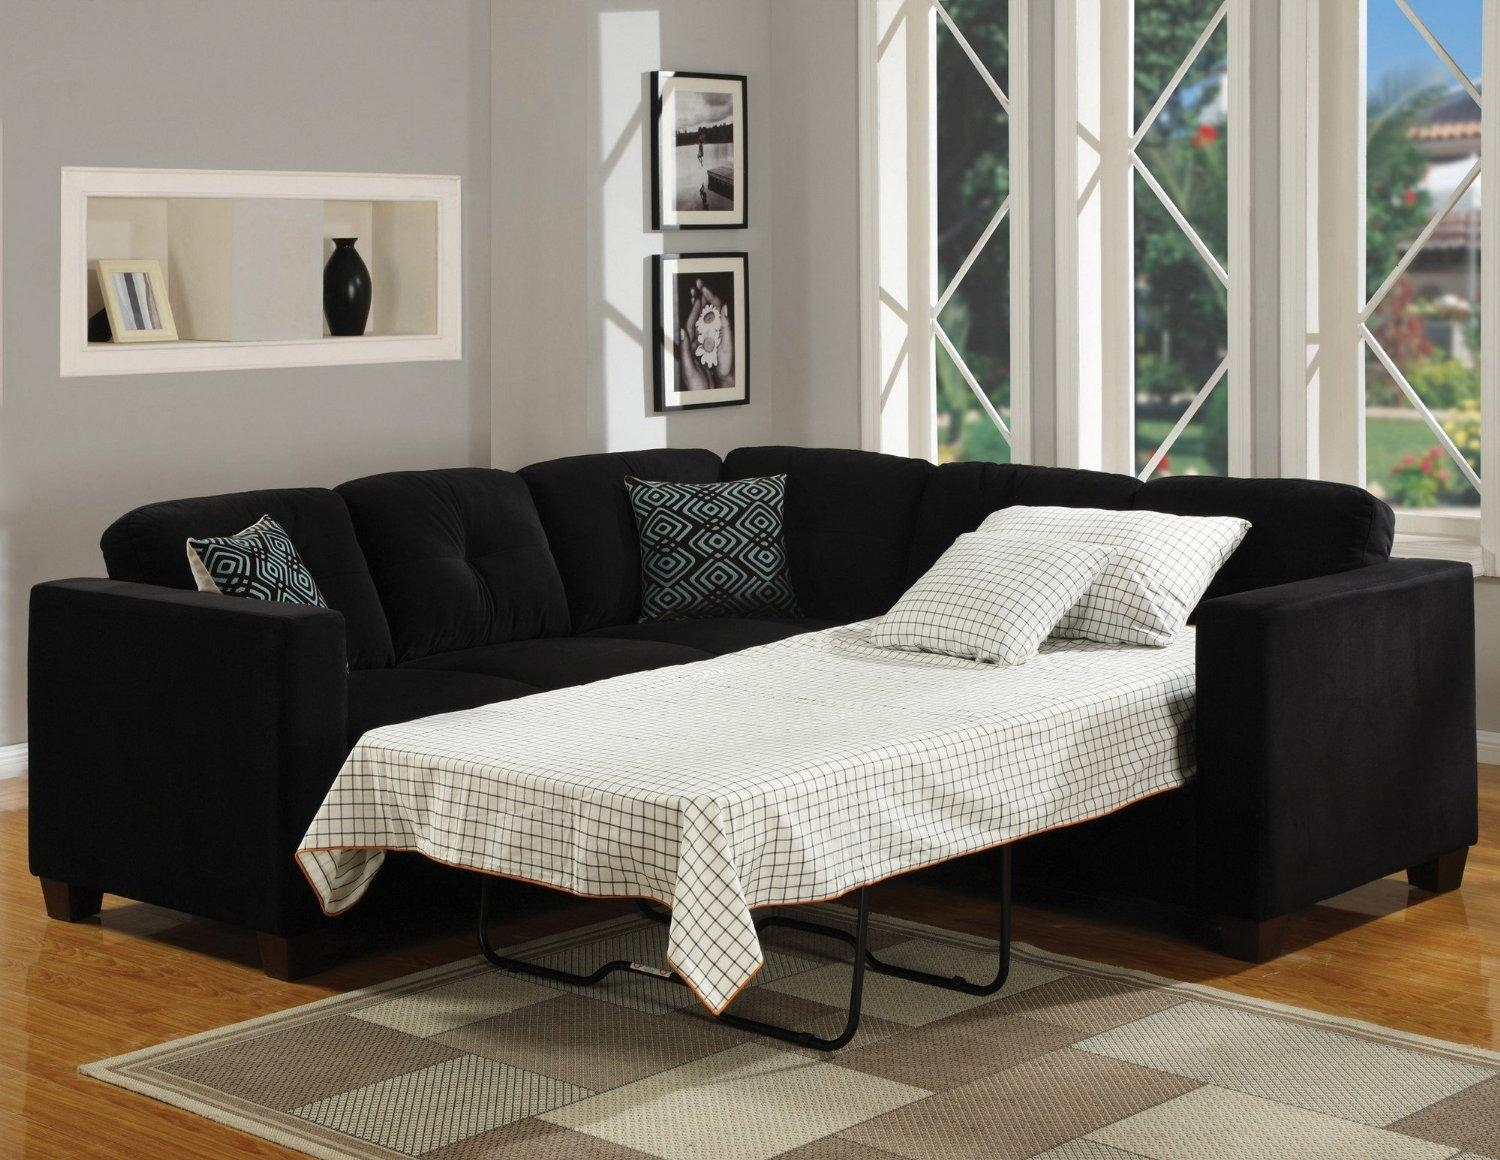 Sleeper Sectional Sofa For Small Spaces — Interior Exterior Homie With Sectional Small Spaces (View 18 of 20)